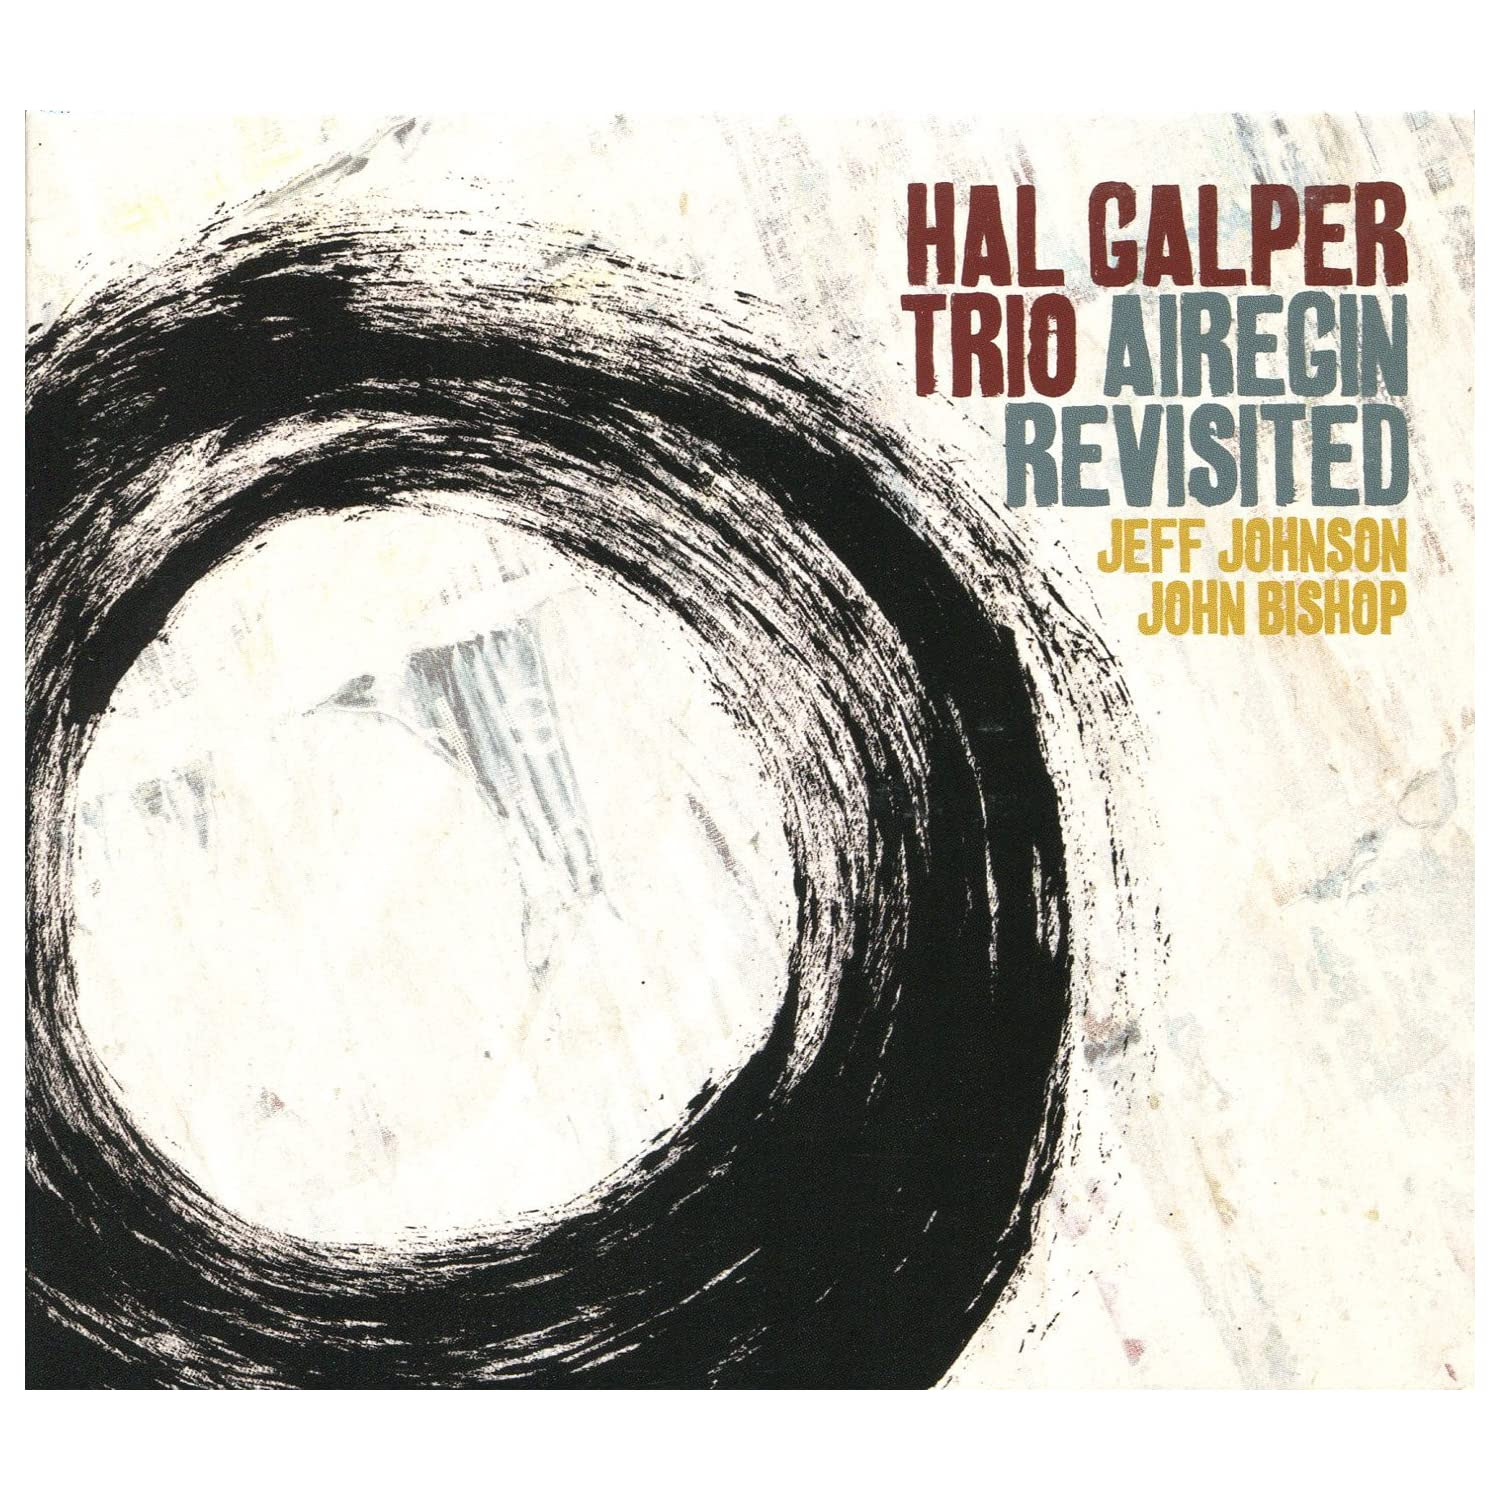 Hal Galper - Airegin Revisited cover